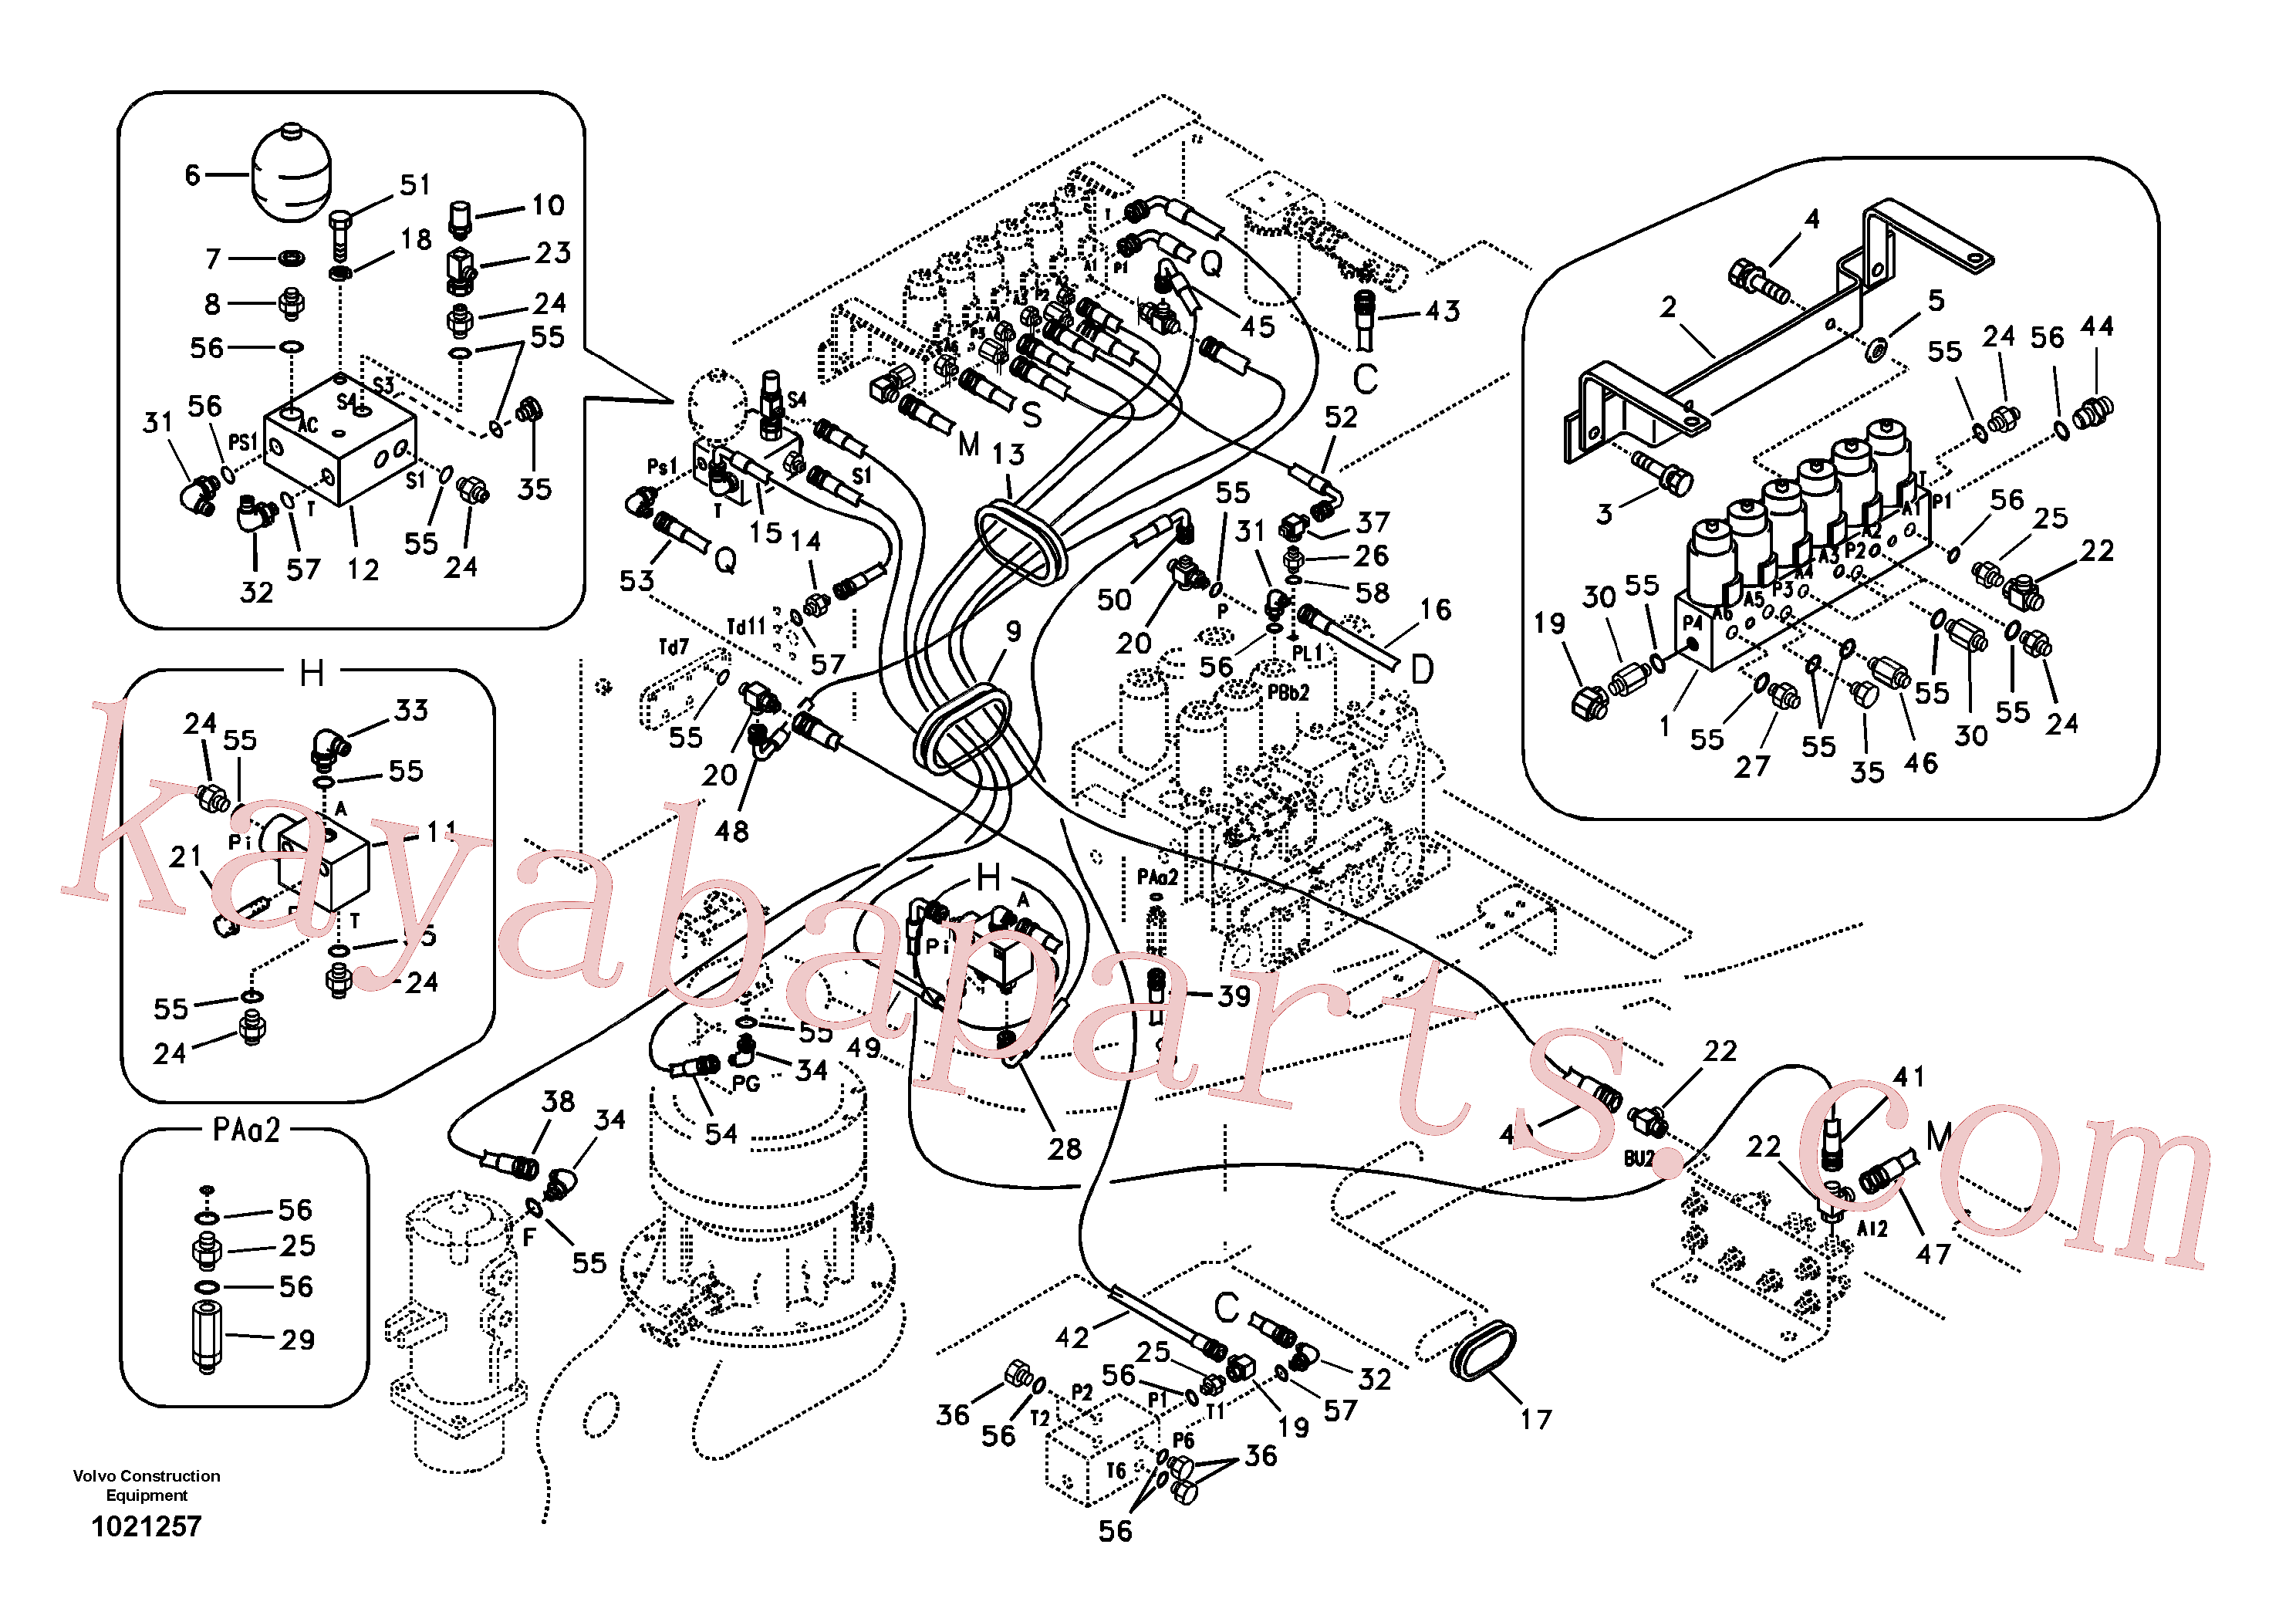 SA9451-02259 for Volvo Servo system, control valve to solenoid valve(1021257 assembly)